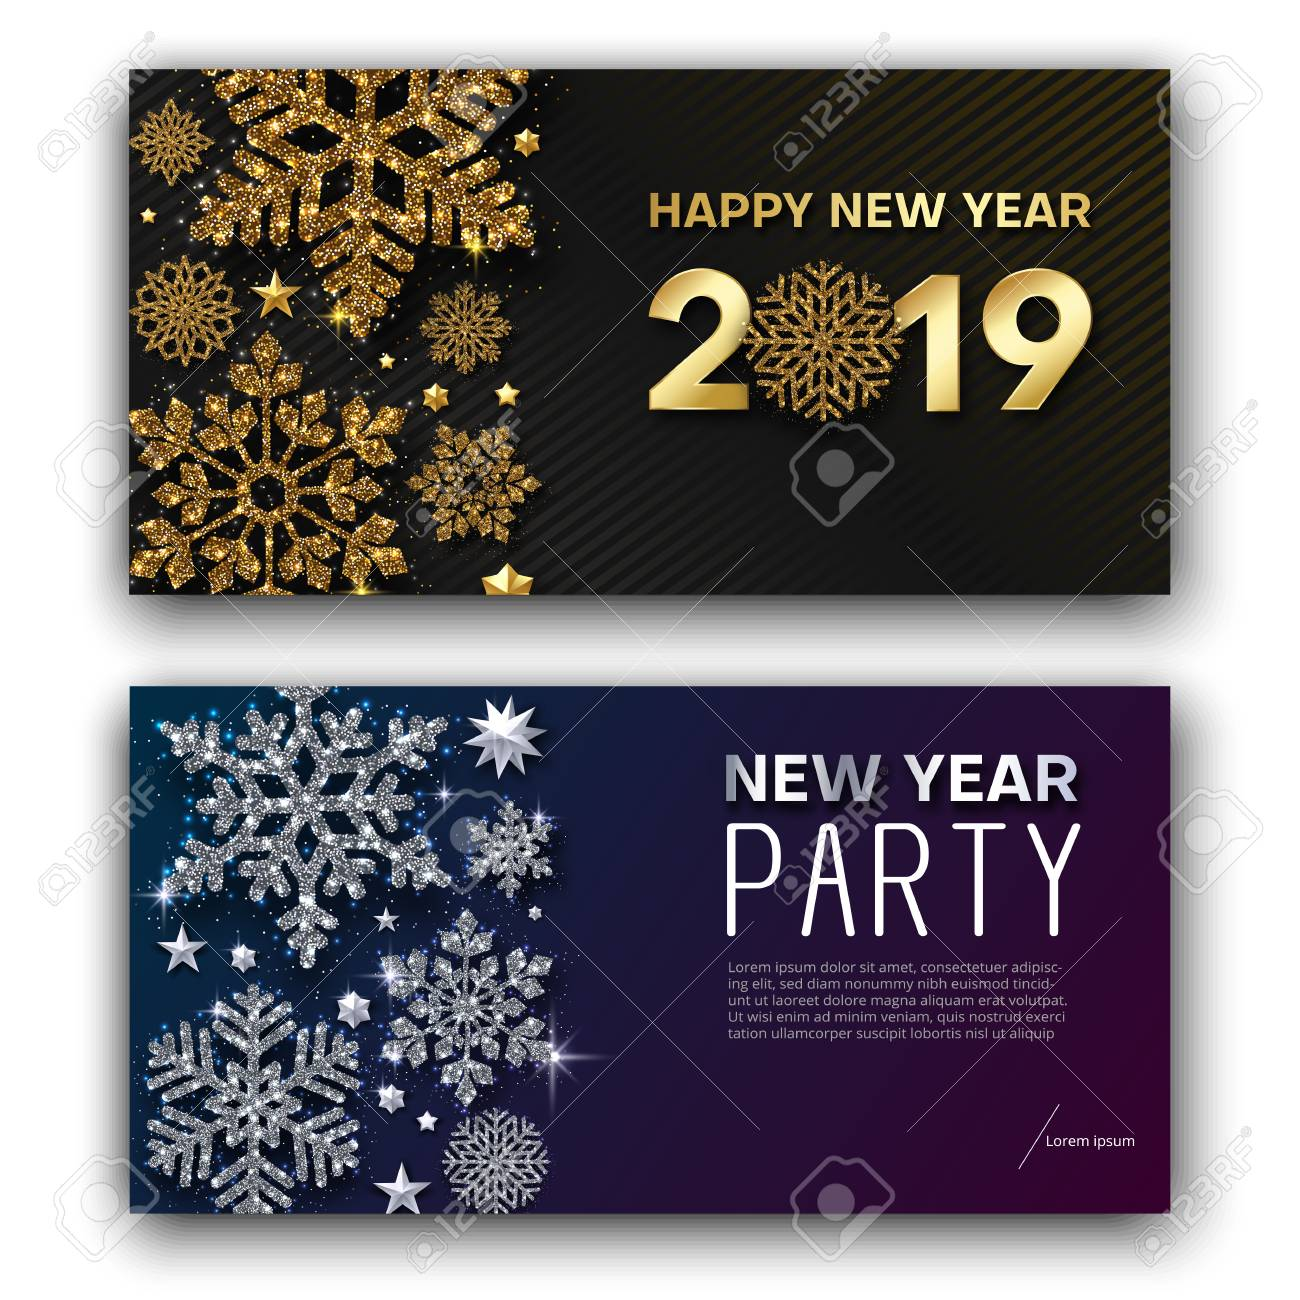 Happy New Year 4 greeting card and New Year party invitation..